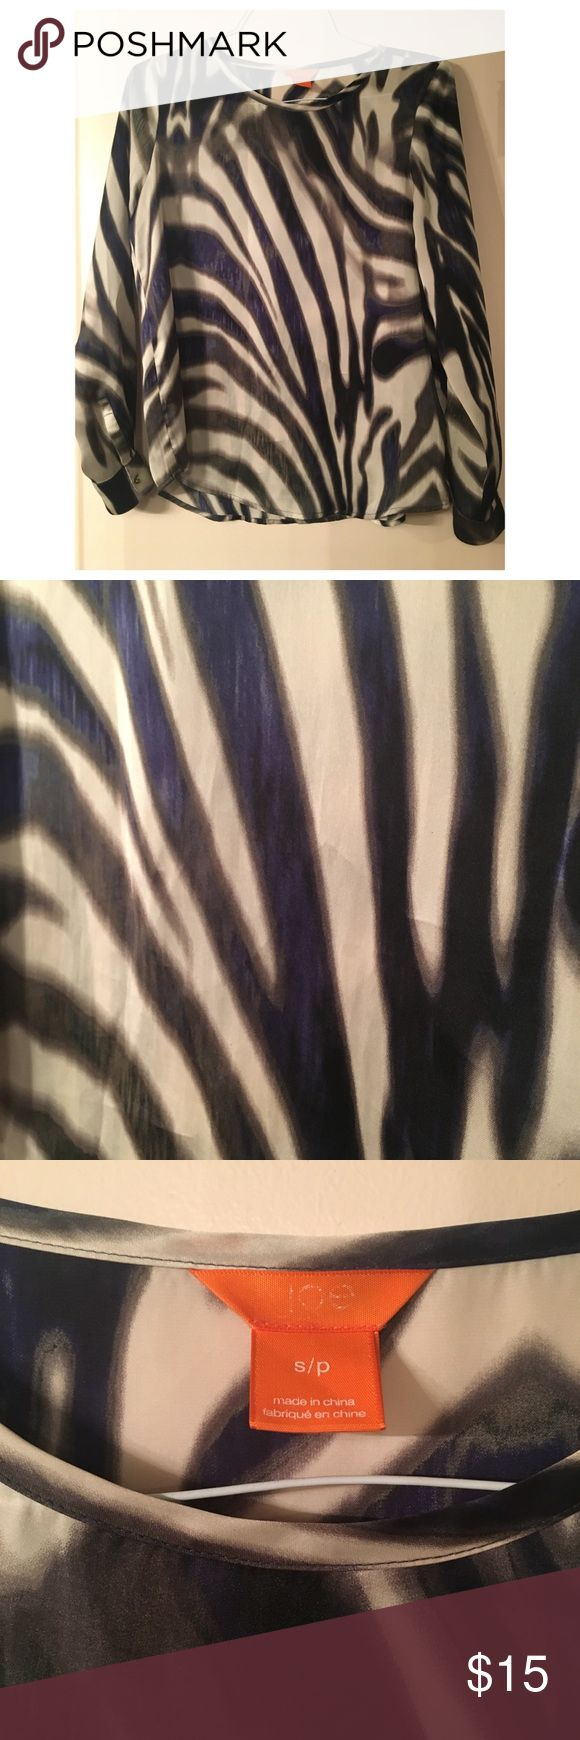 Joe Fresh Zebra Print Pattern Blouse Joe Fresh zebra print blouse - black and white with blue and purple hints throughout. Very lightweight and in great condition. Joe Fresh Tops Blouses